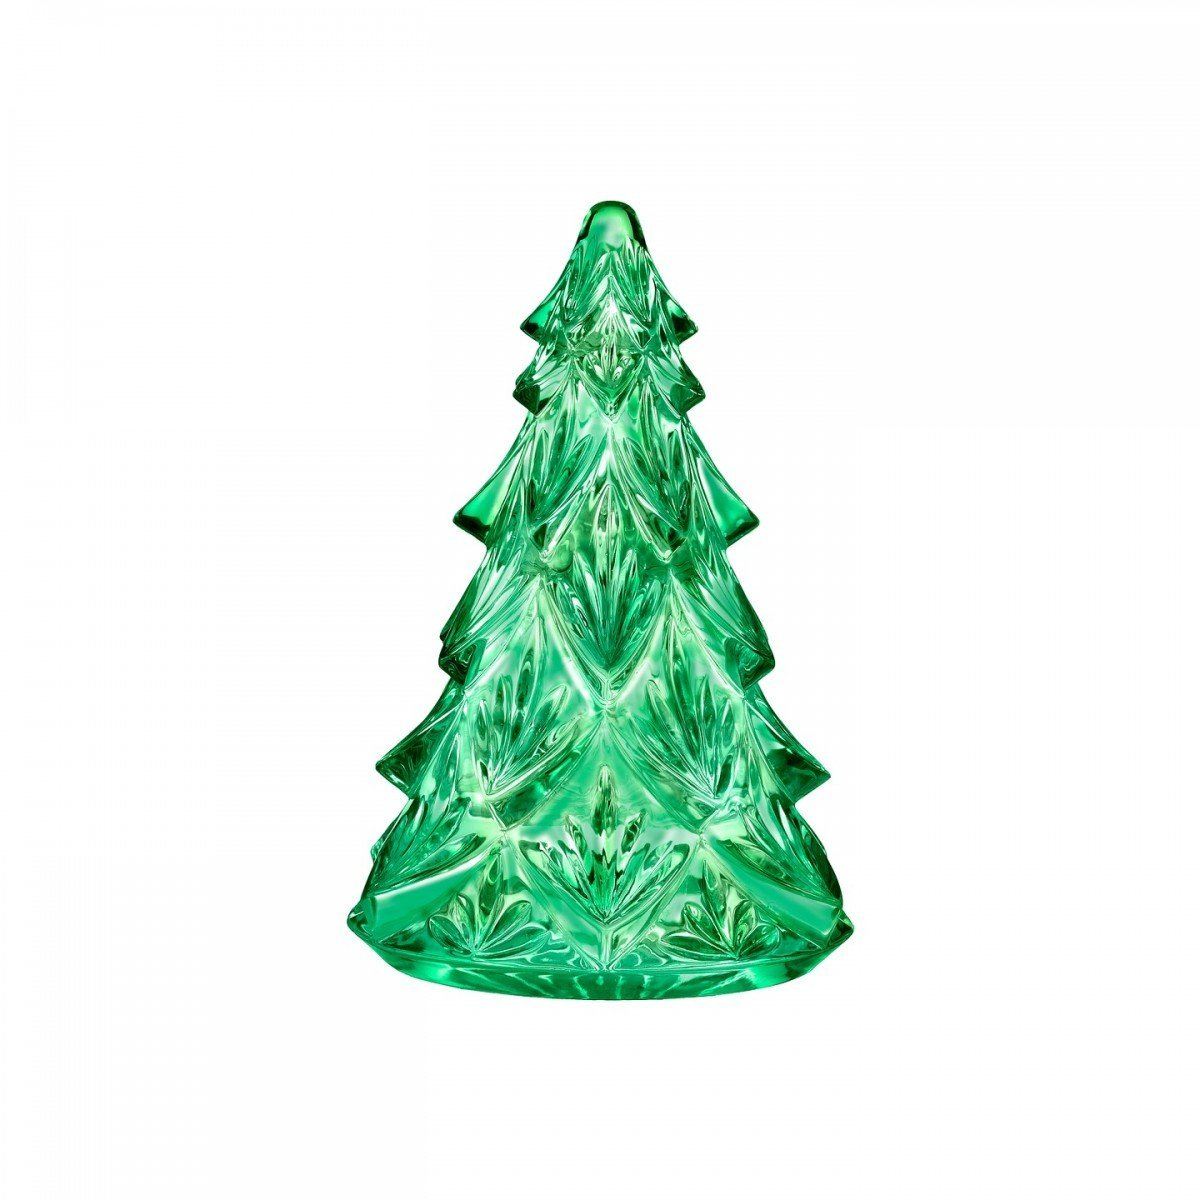 Waterford Medium Green Crystal Christmas Tree Sculpture F...